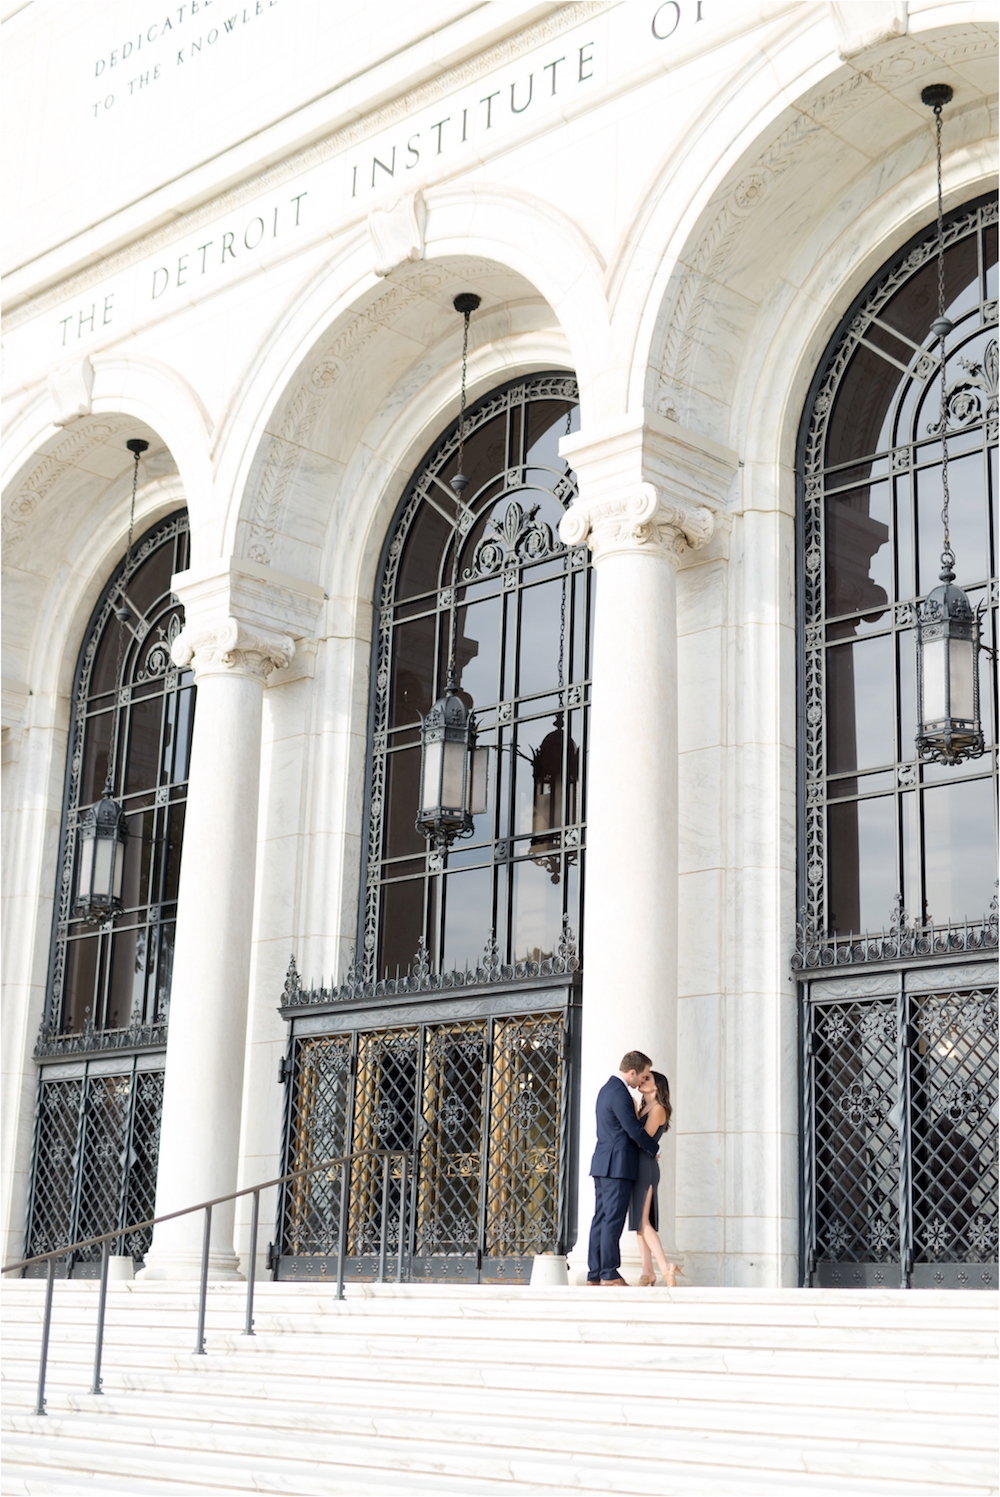 detroit-institute-of-arts-marble-elegant-gold-wedding-engagement-photo-56.jpg